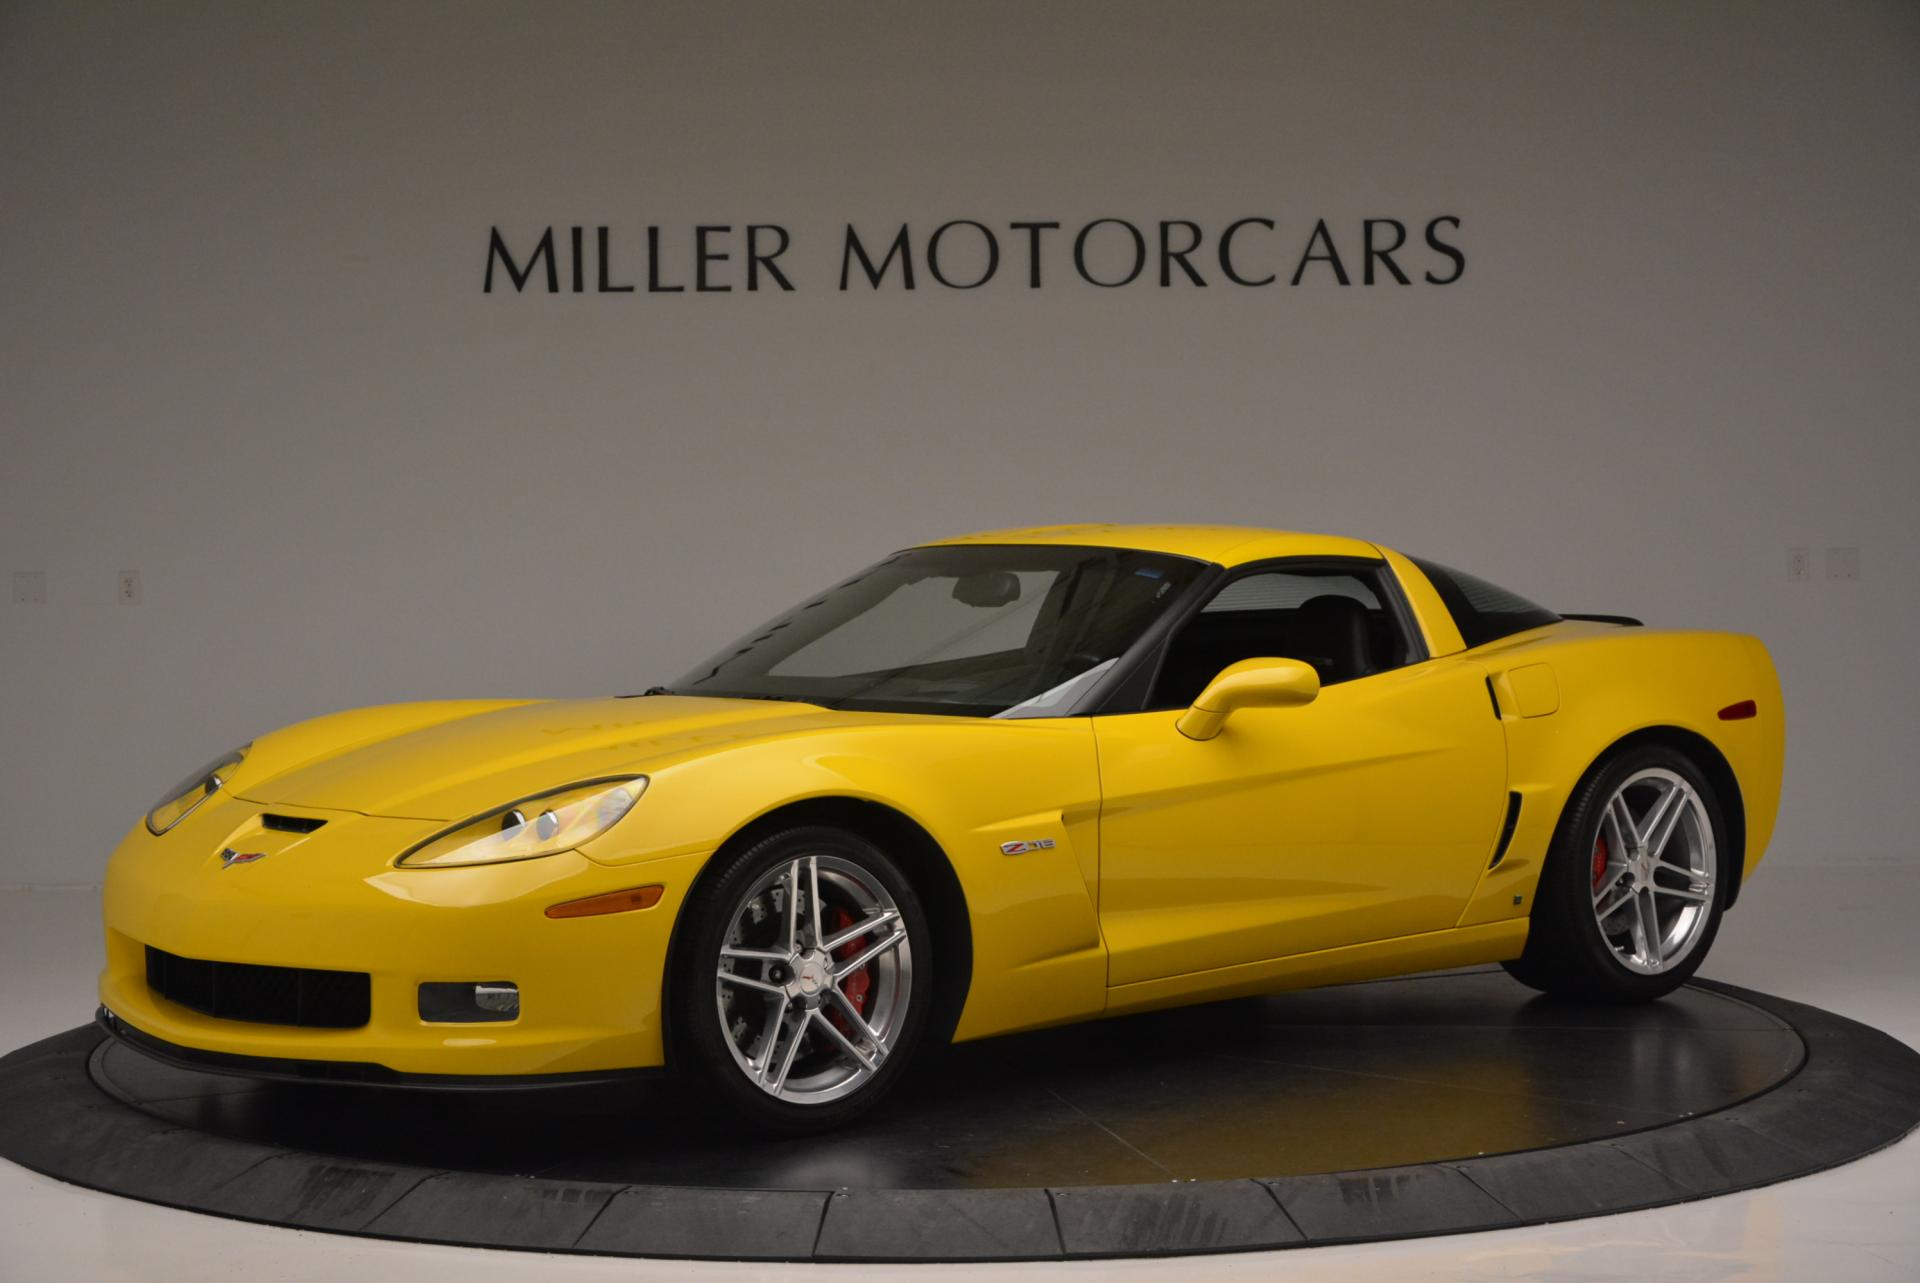 Used 2006 Chevrolet Corvette Z06 Hardtop for sale Sold at Alfa Romeo of Greenwich in Greenwich CT 06830 1